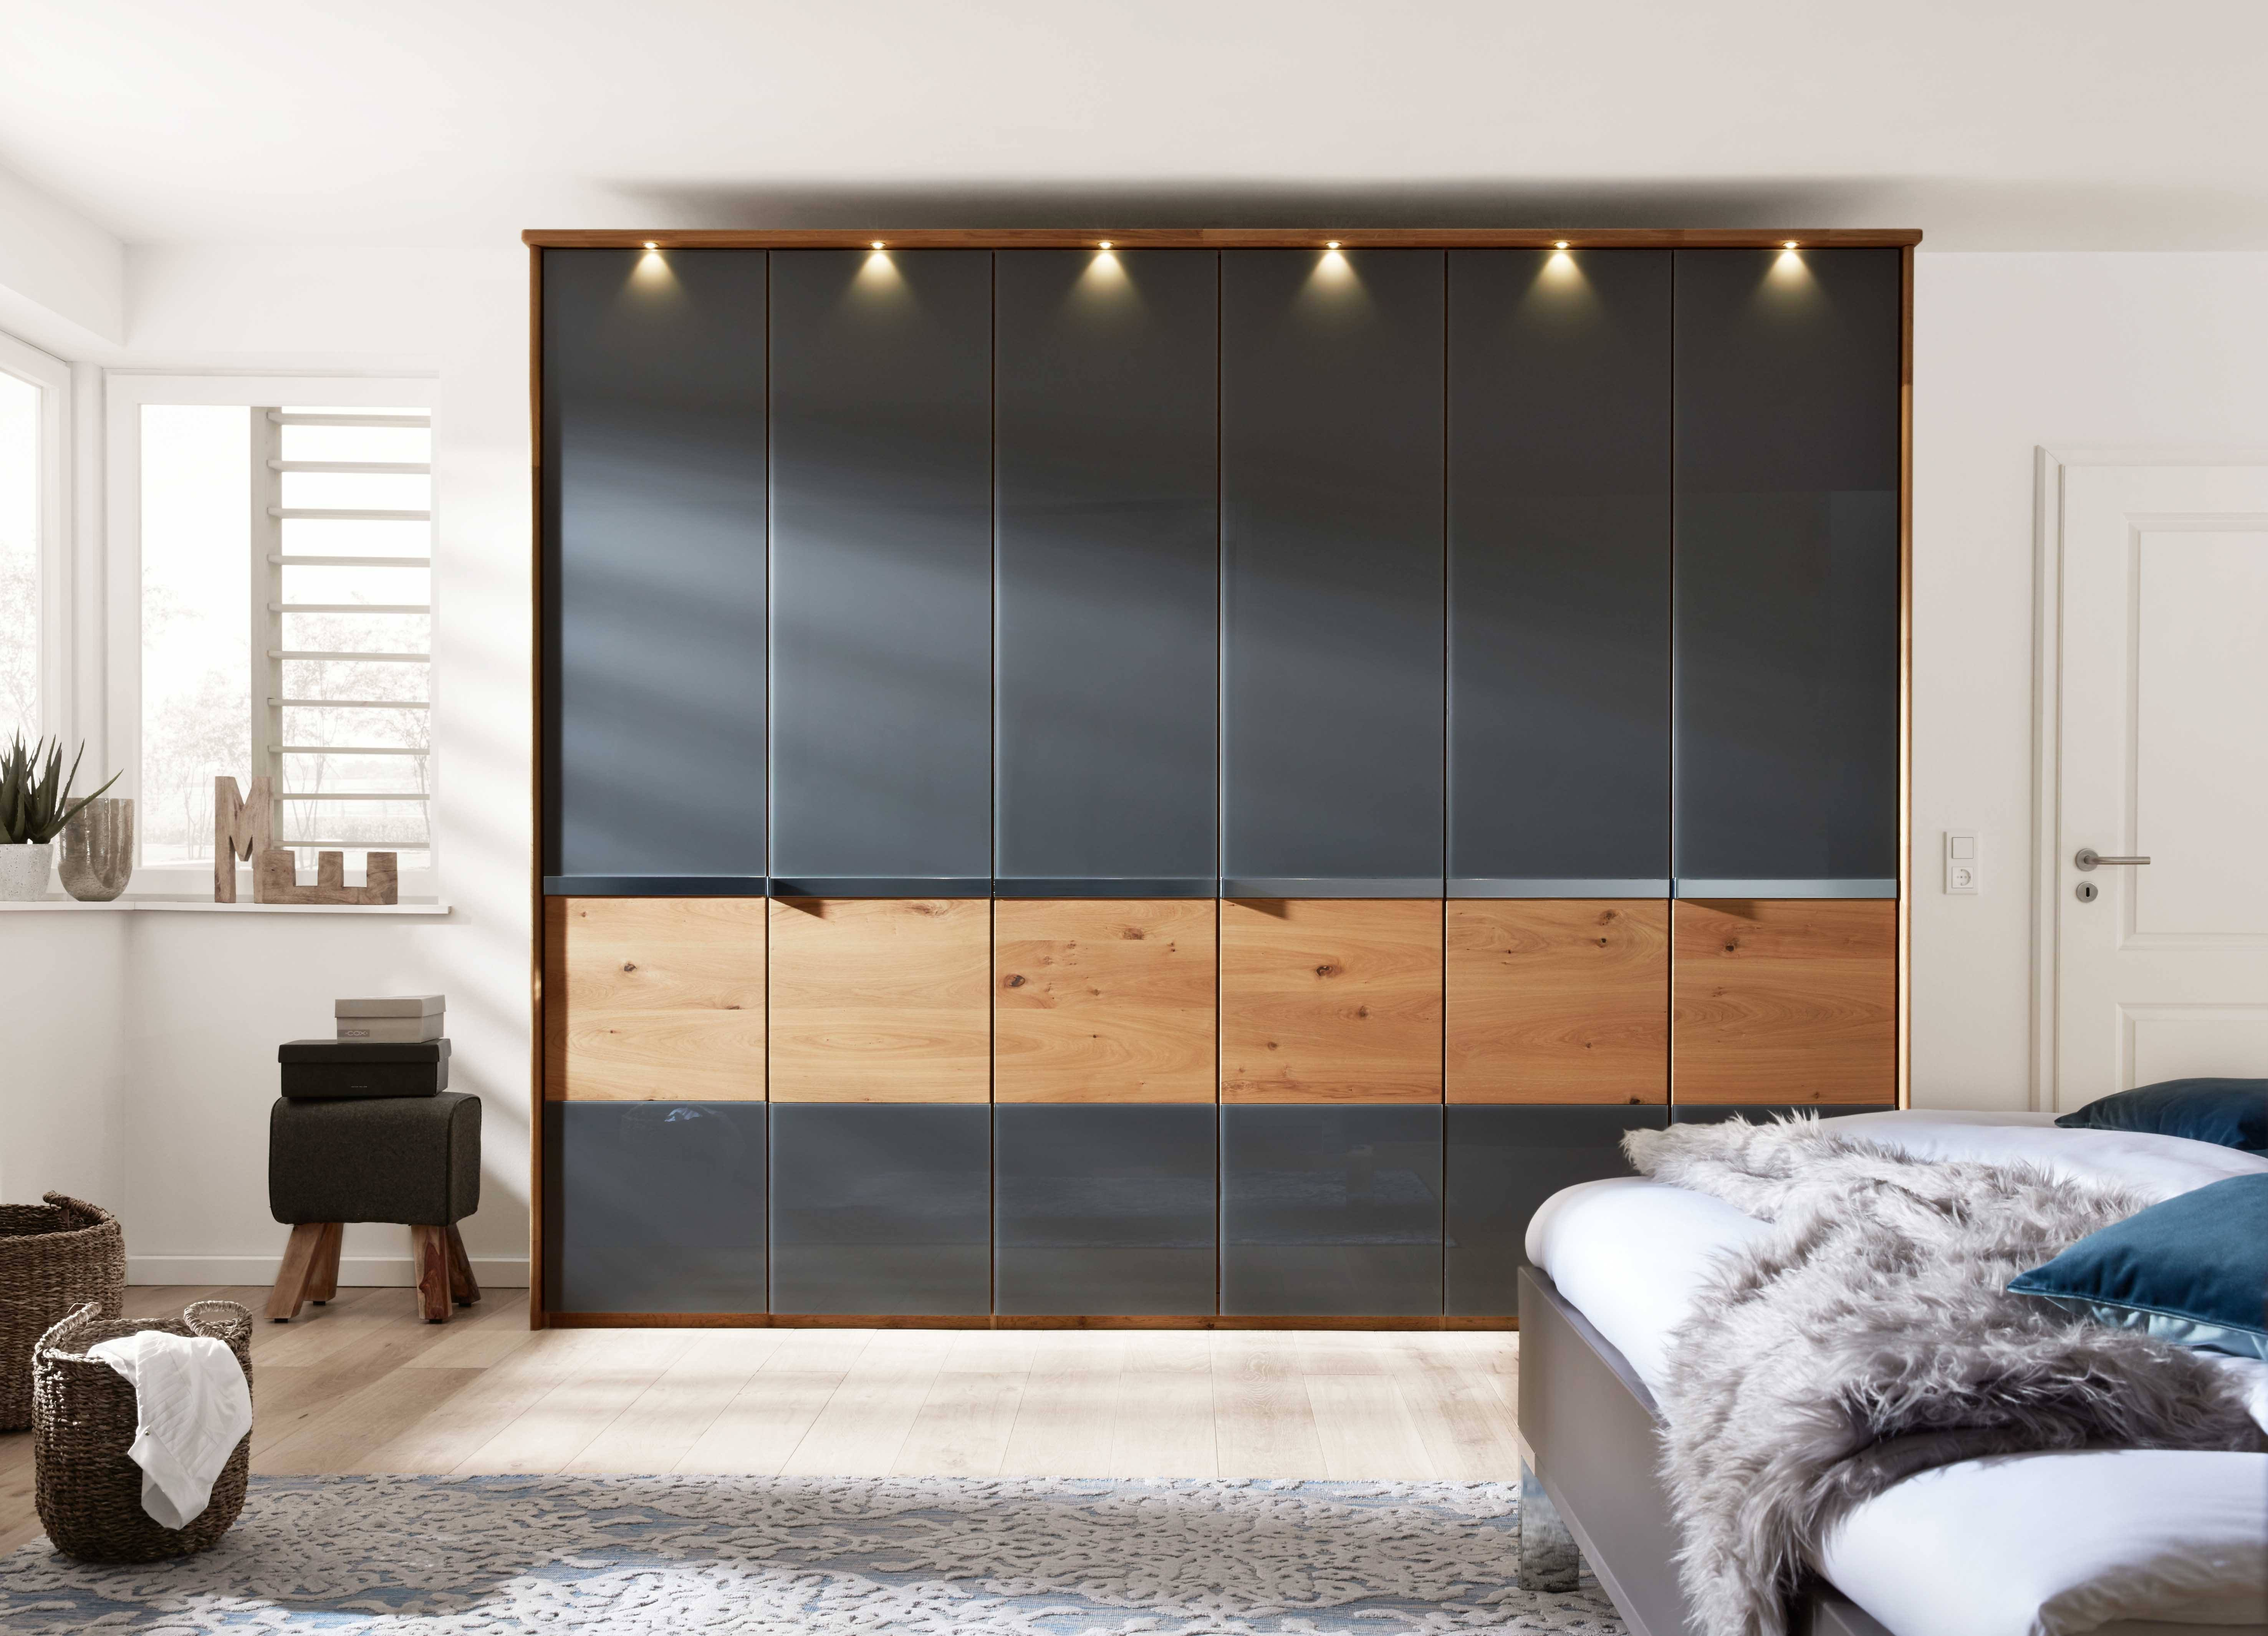 schrank konfigurieren kleiderschrank selbst zusammenstellen. Black Bedroom Furniture Sets. Home Design Ideas